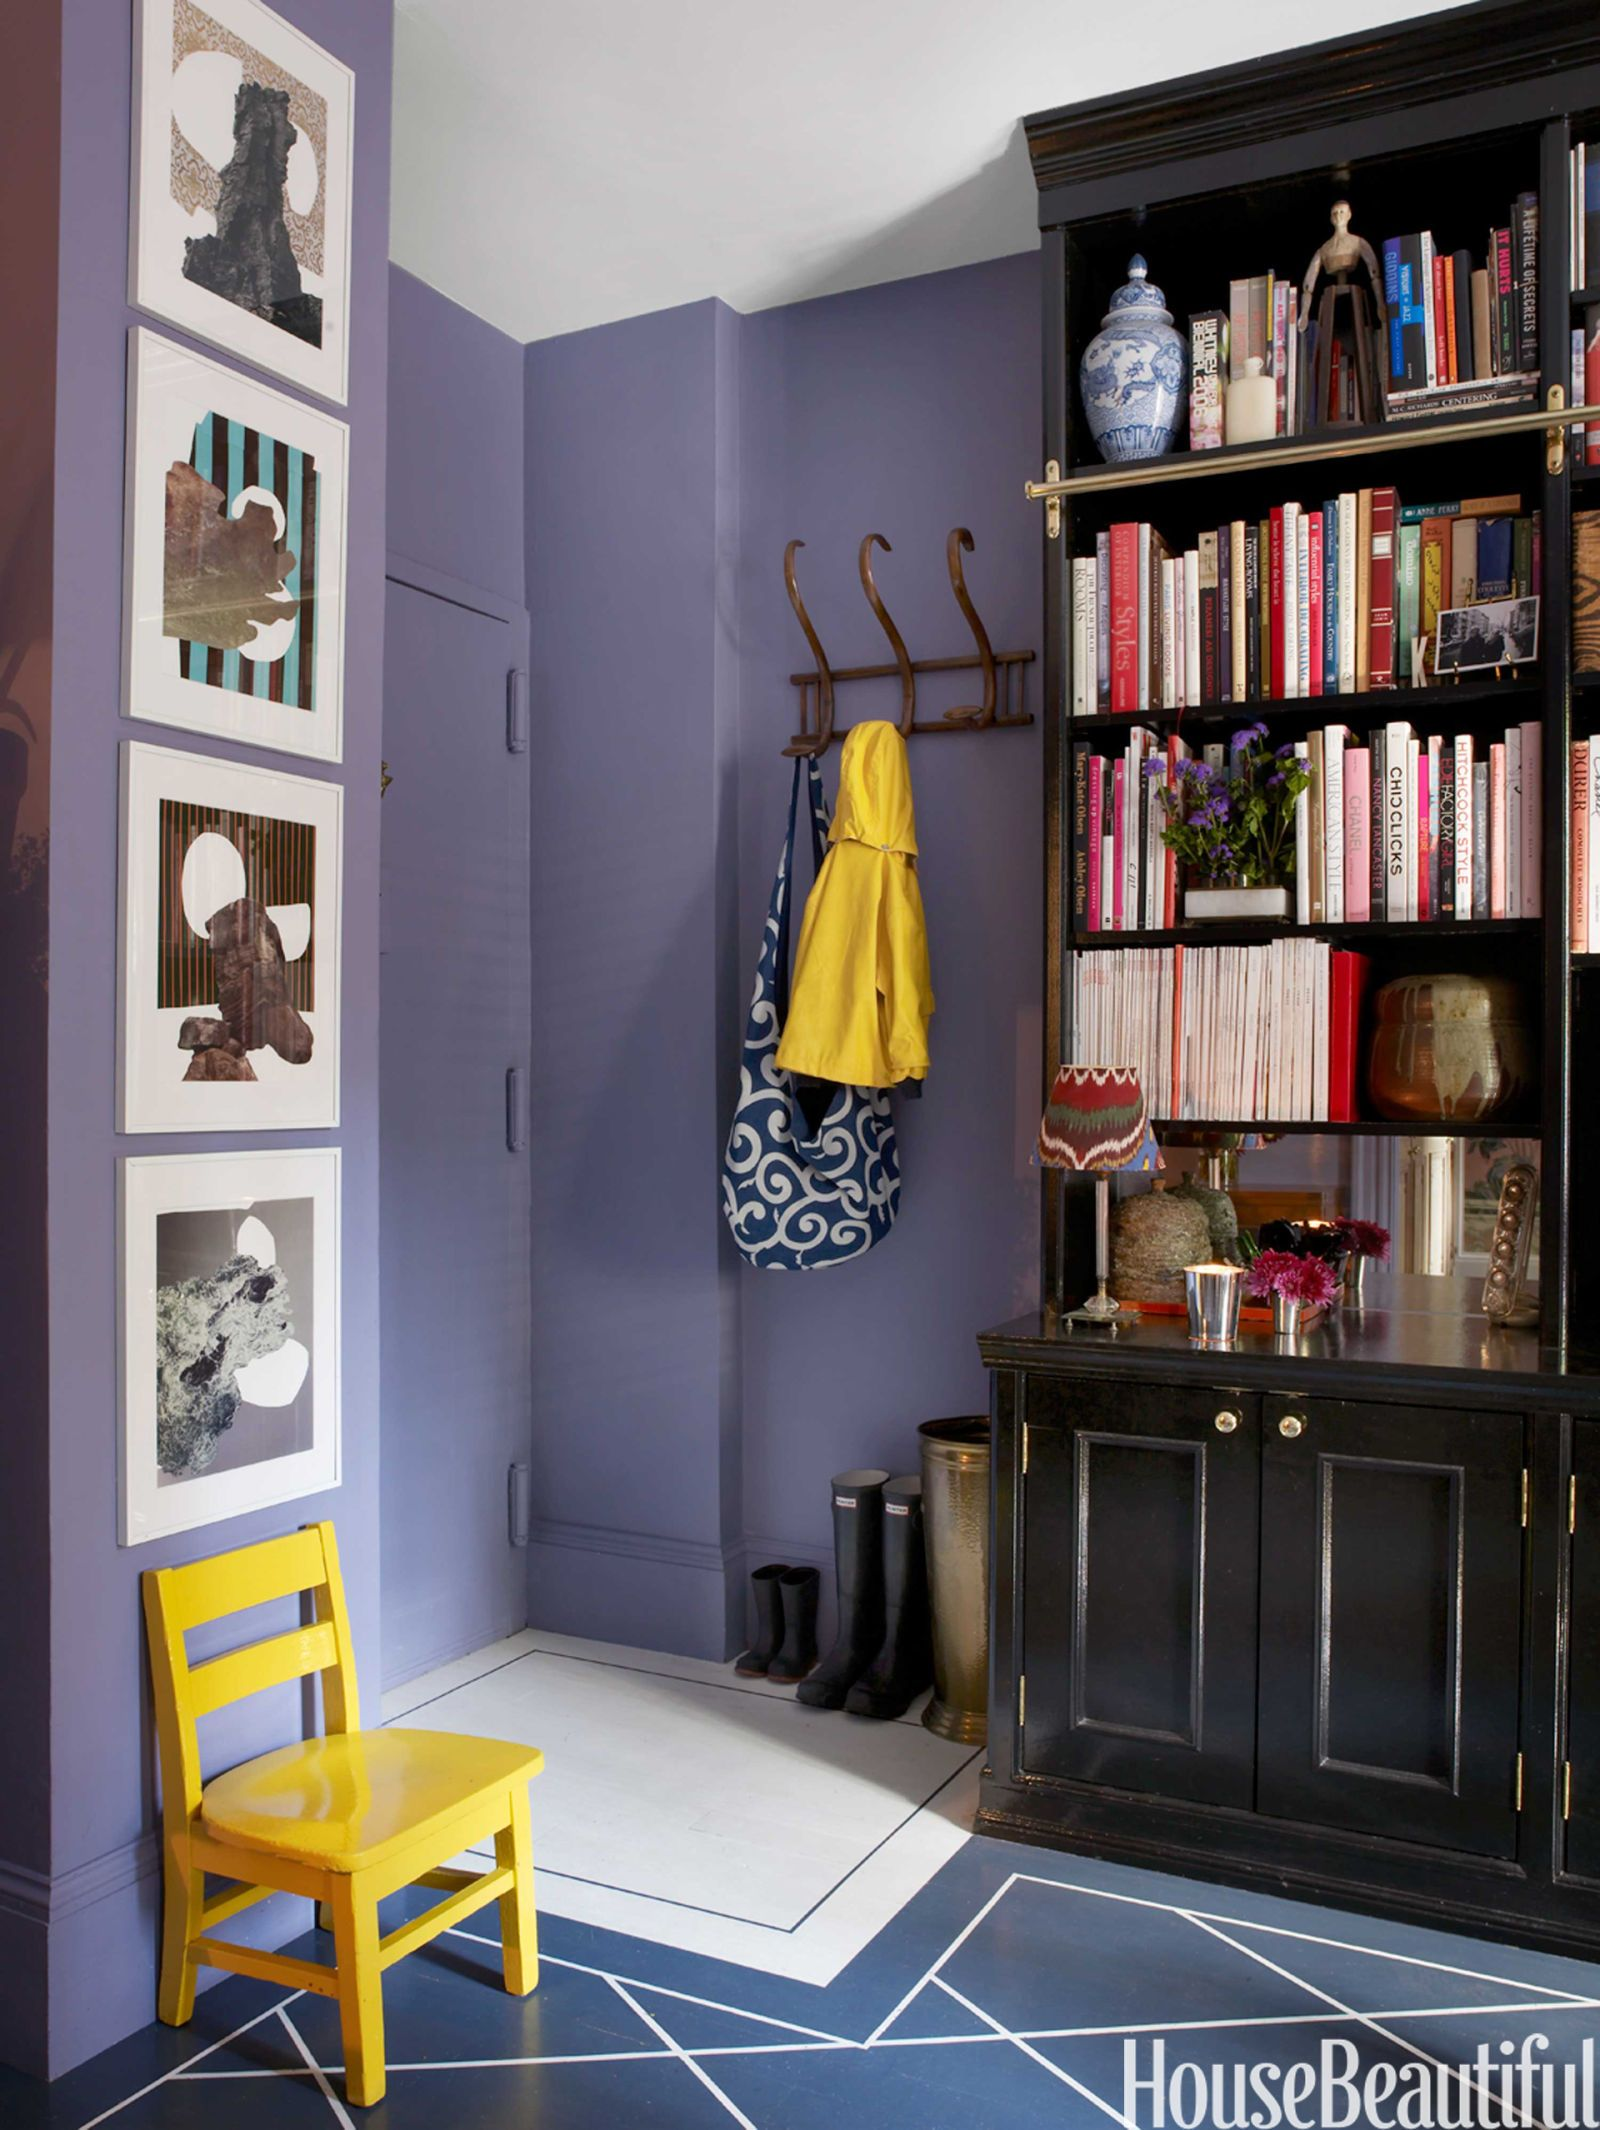 . 11 Small Space Design Ideas   How to Make the Most of a Small Space